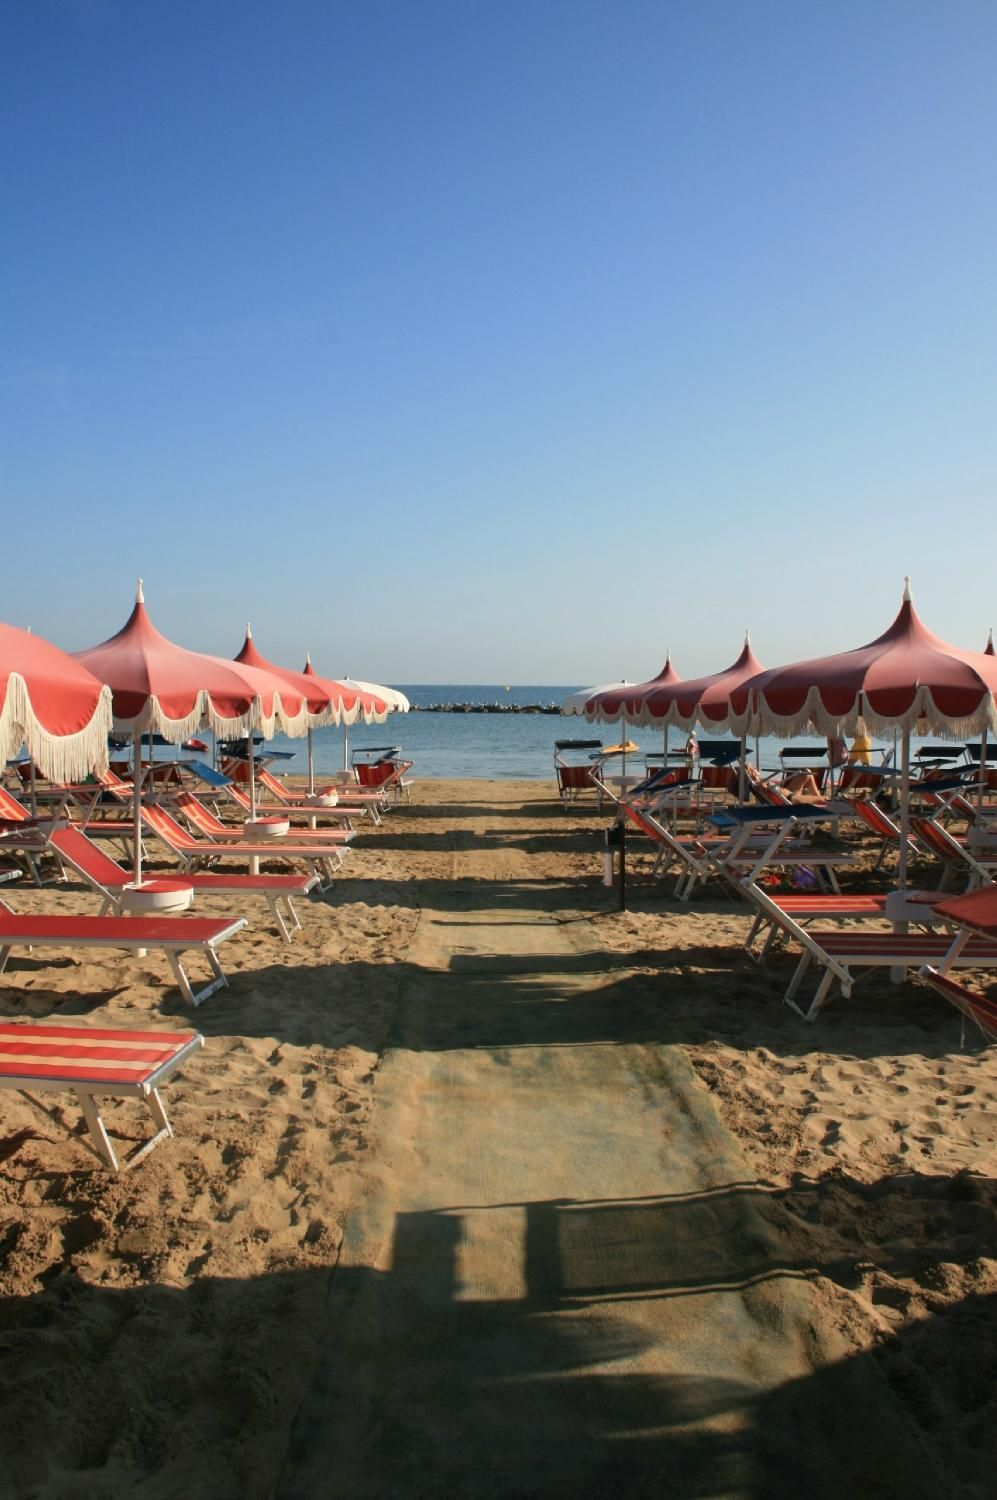 Spiaggia Carmen 67 Cattolica Italy Top Tips Before You Go